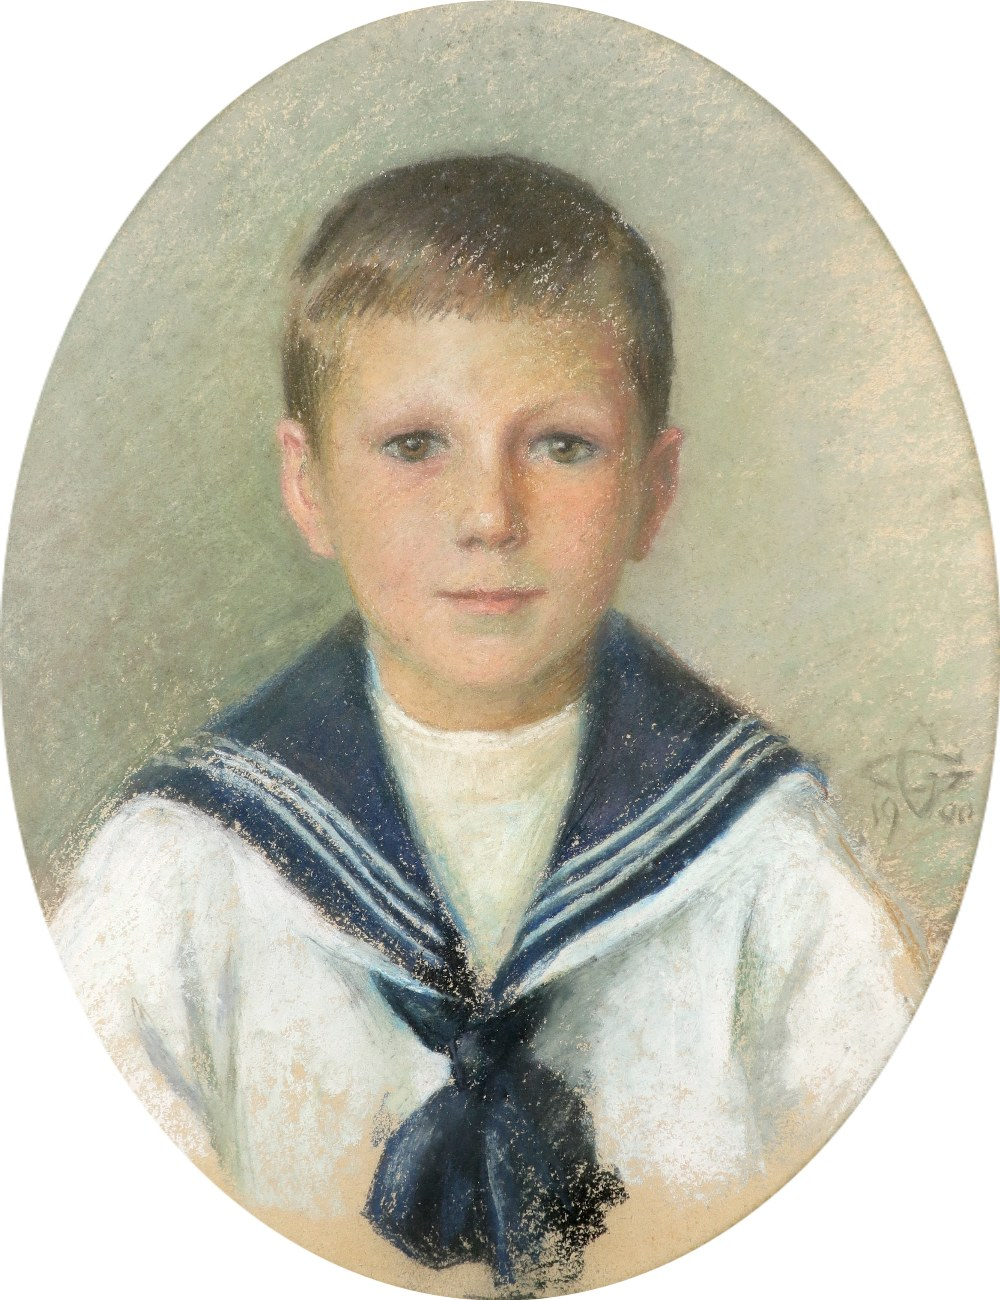 British School 1900 Portrait of a boy in a sailor suit; Portrait of a girl in a blue dress with lace